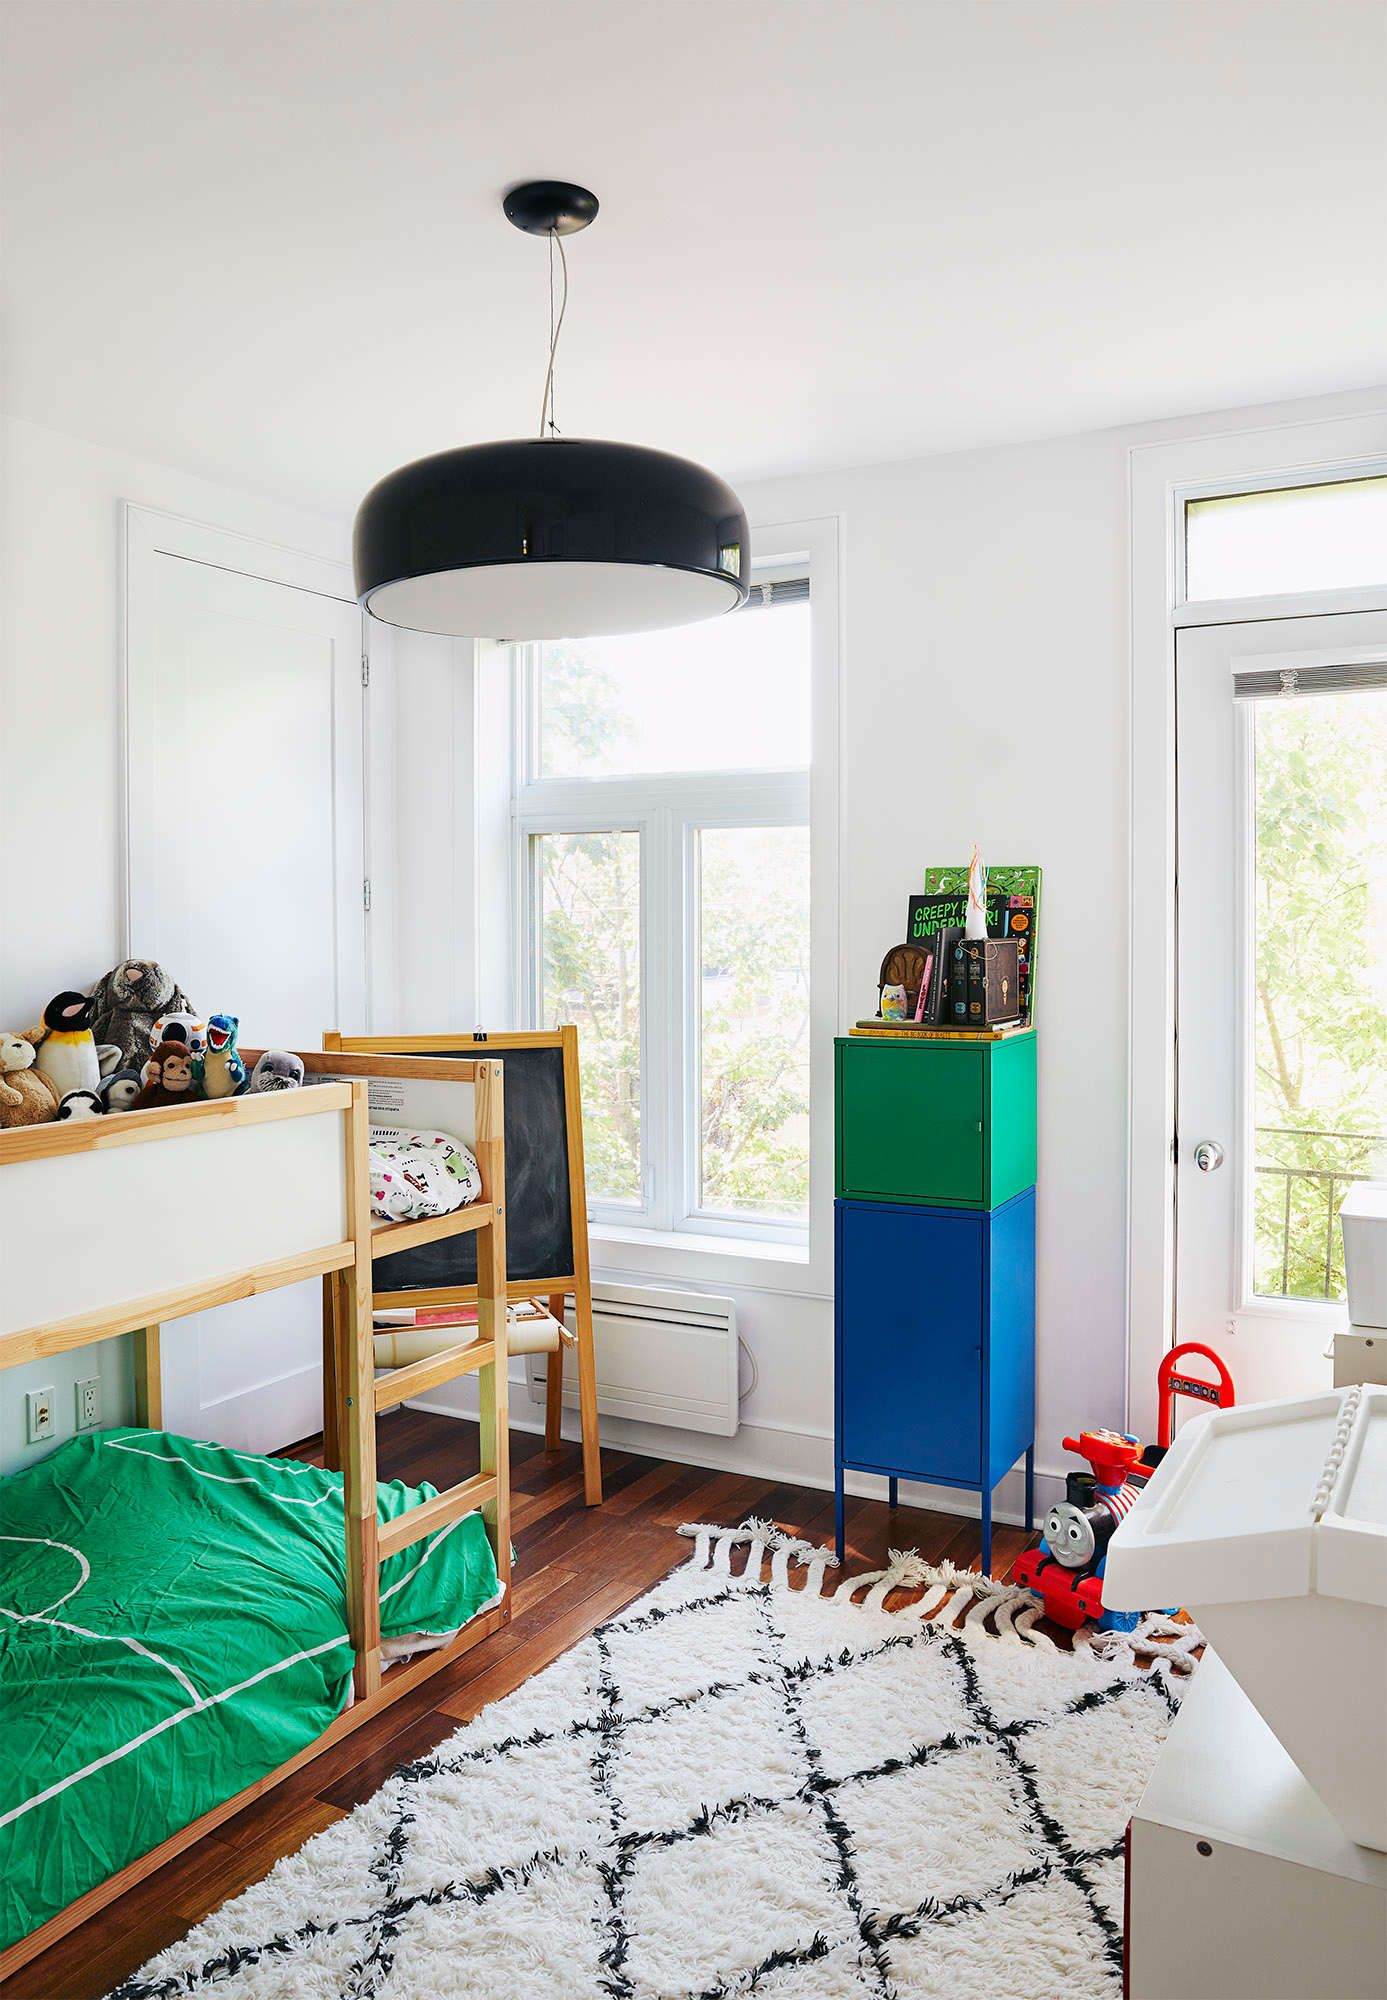 Arthurs bedroom is playful and decorated using different colors bright green blue and red